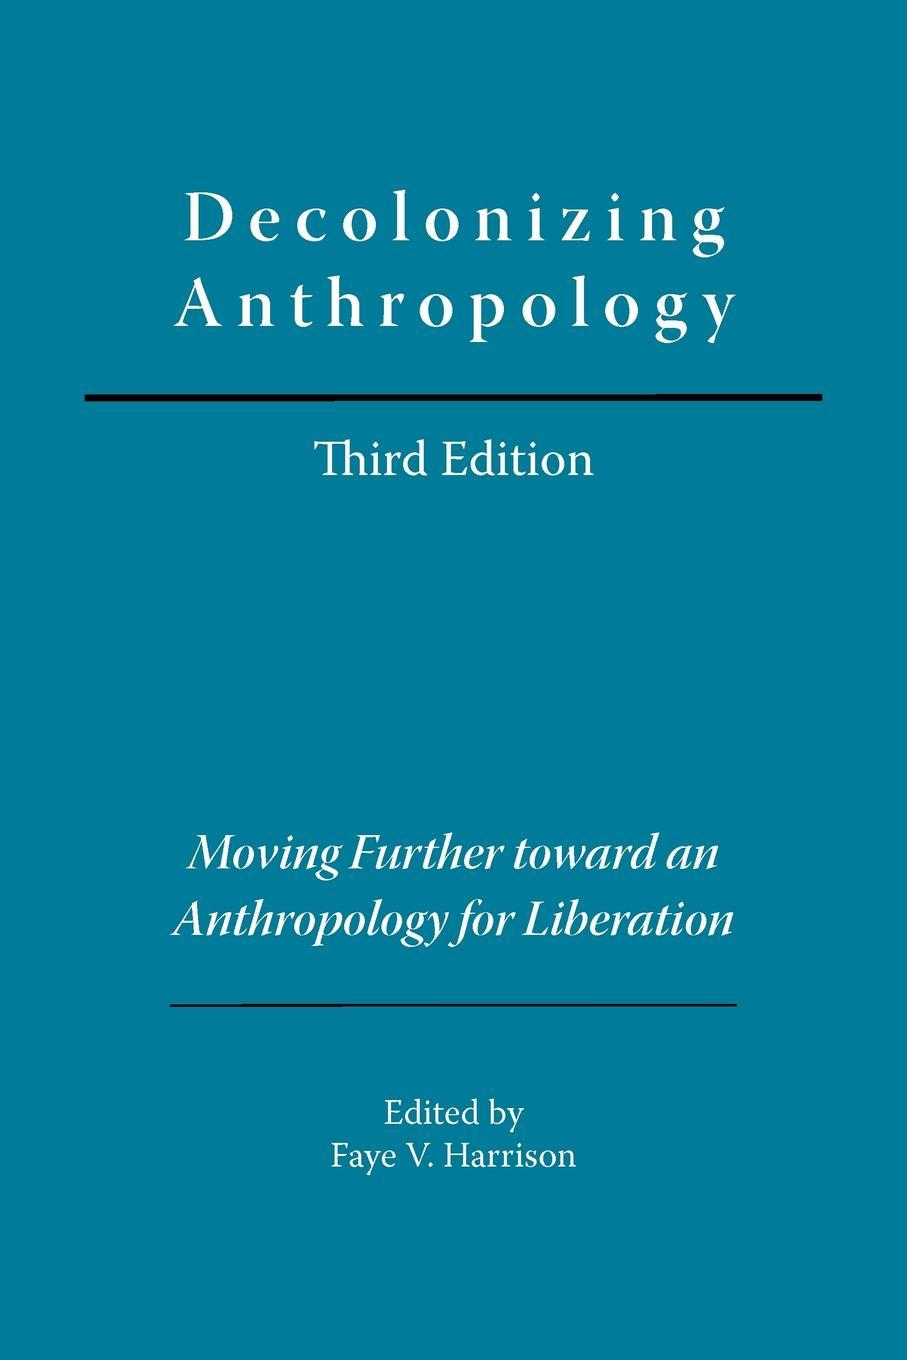 Decolonizing Anthropology, 3rd edition: Moving Further toward an Anthropology for Liberation EB9780983682202